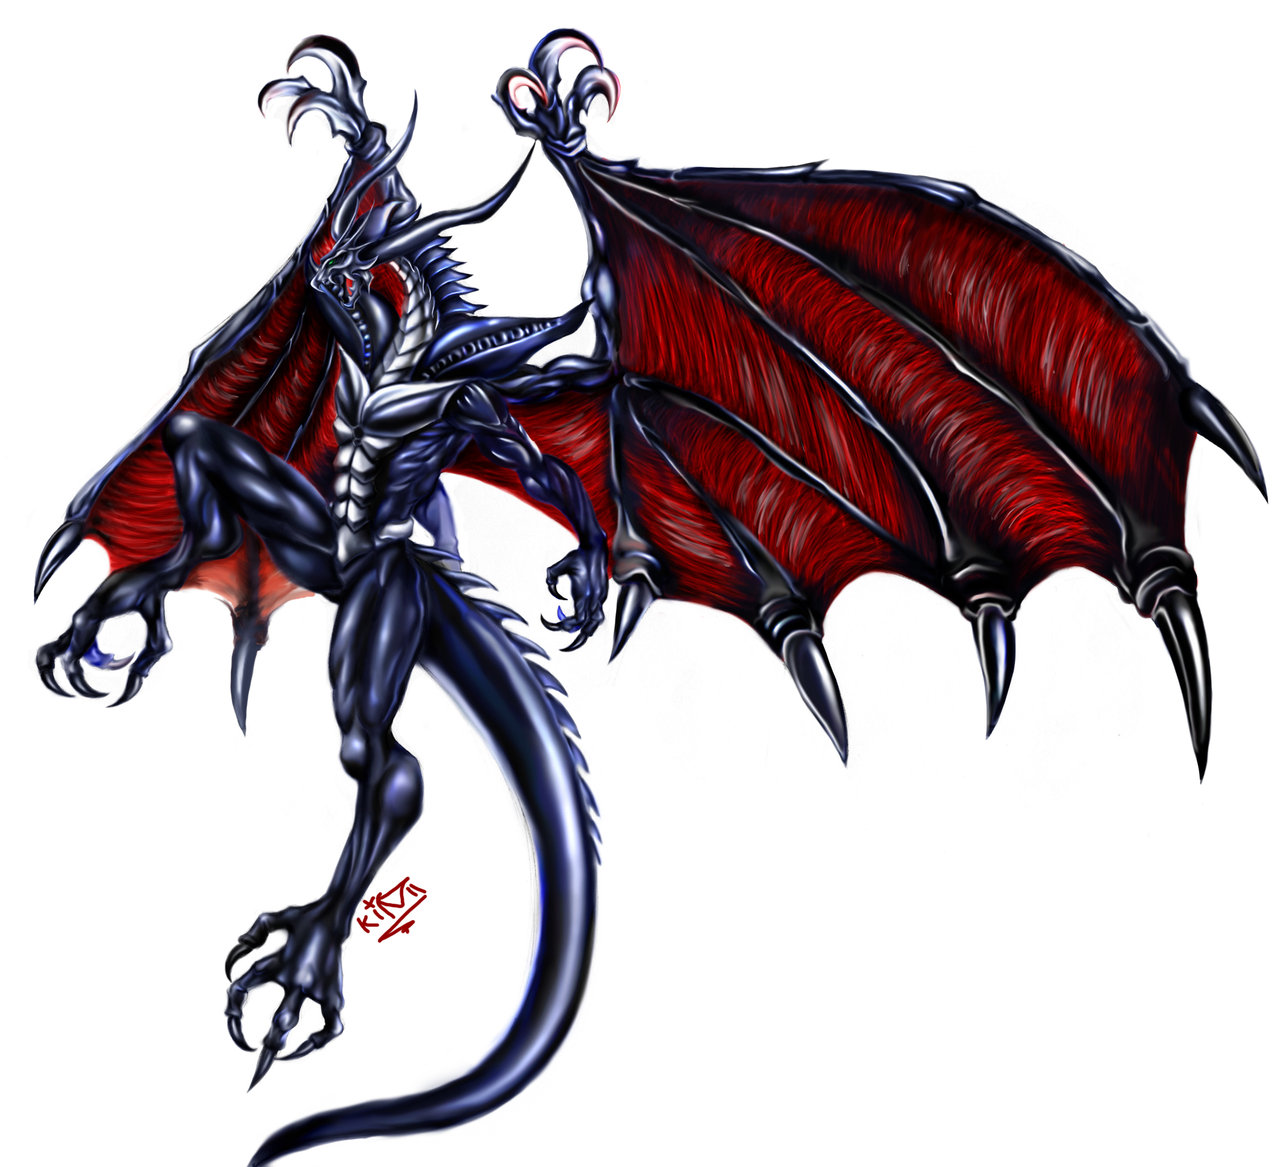 bahamut_by_XCarCass.jpg